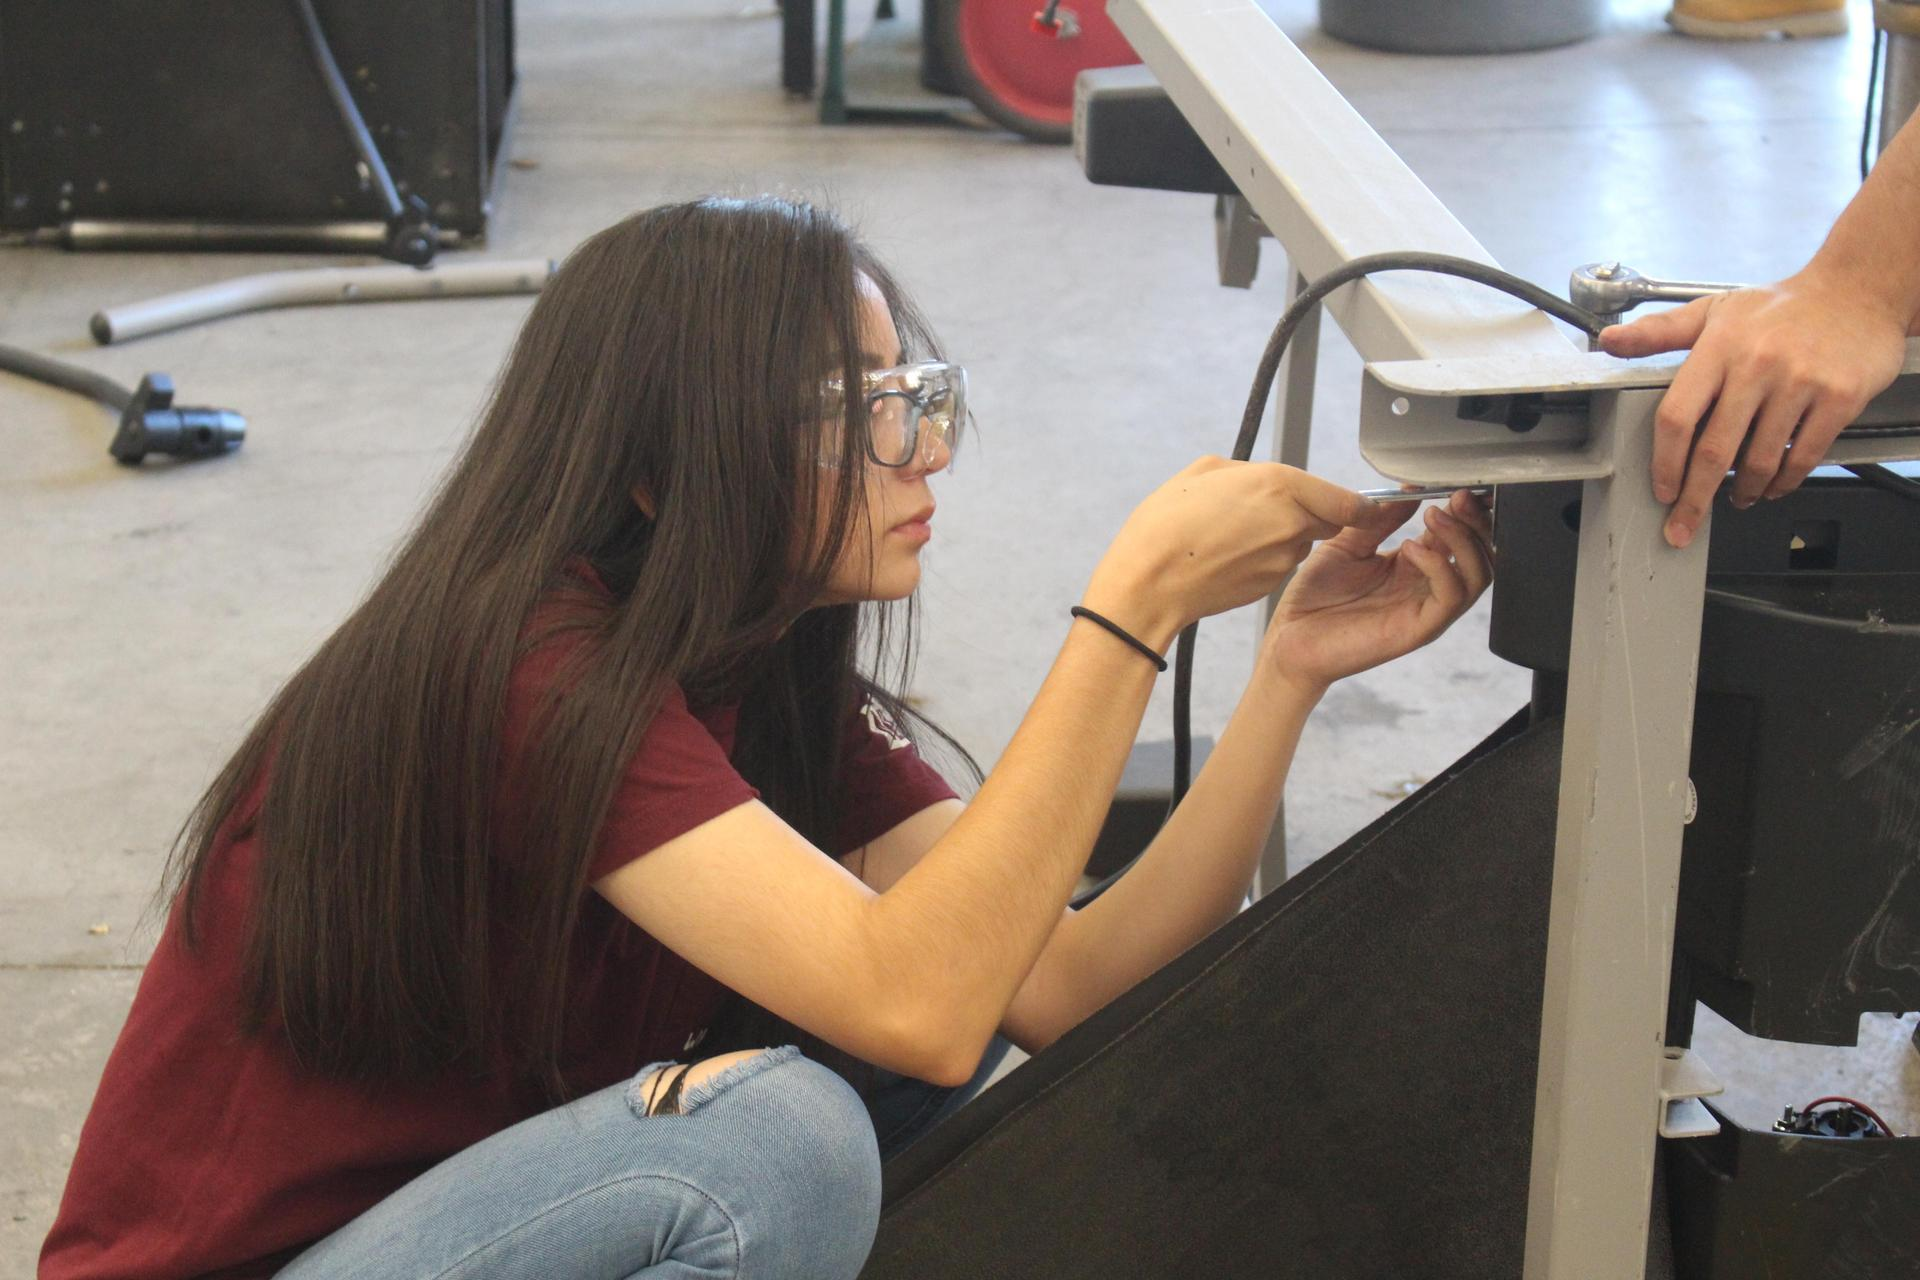 Female student helping put together a hoist